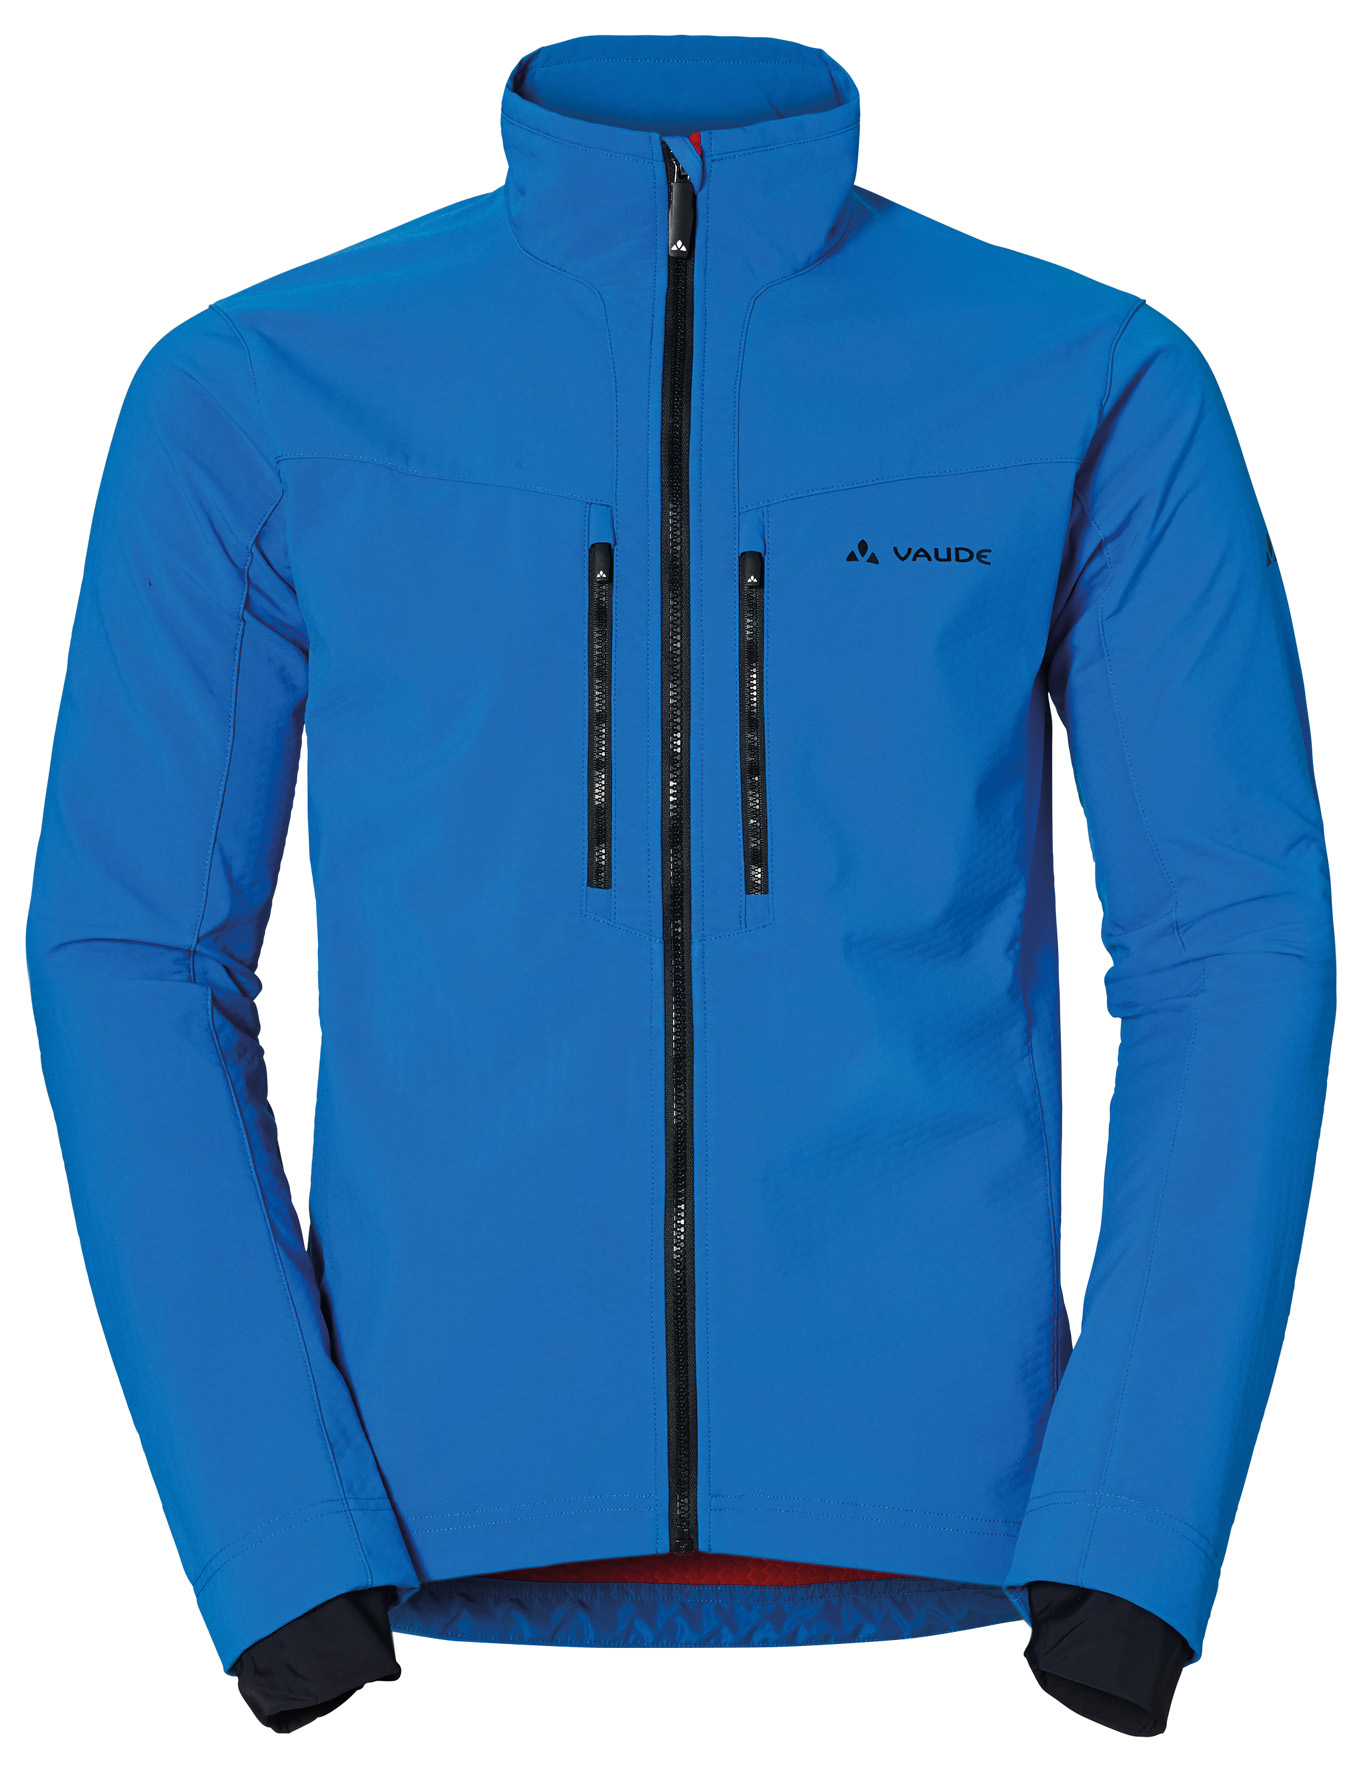 VAUDE Men´s Qimsa Softshell Jacket hydro blue Größe M - VAUDE Men´s Qimsa Softshell Jacket hydro blue Größe M